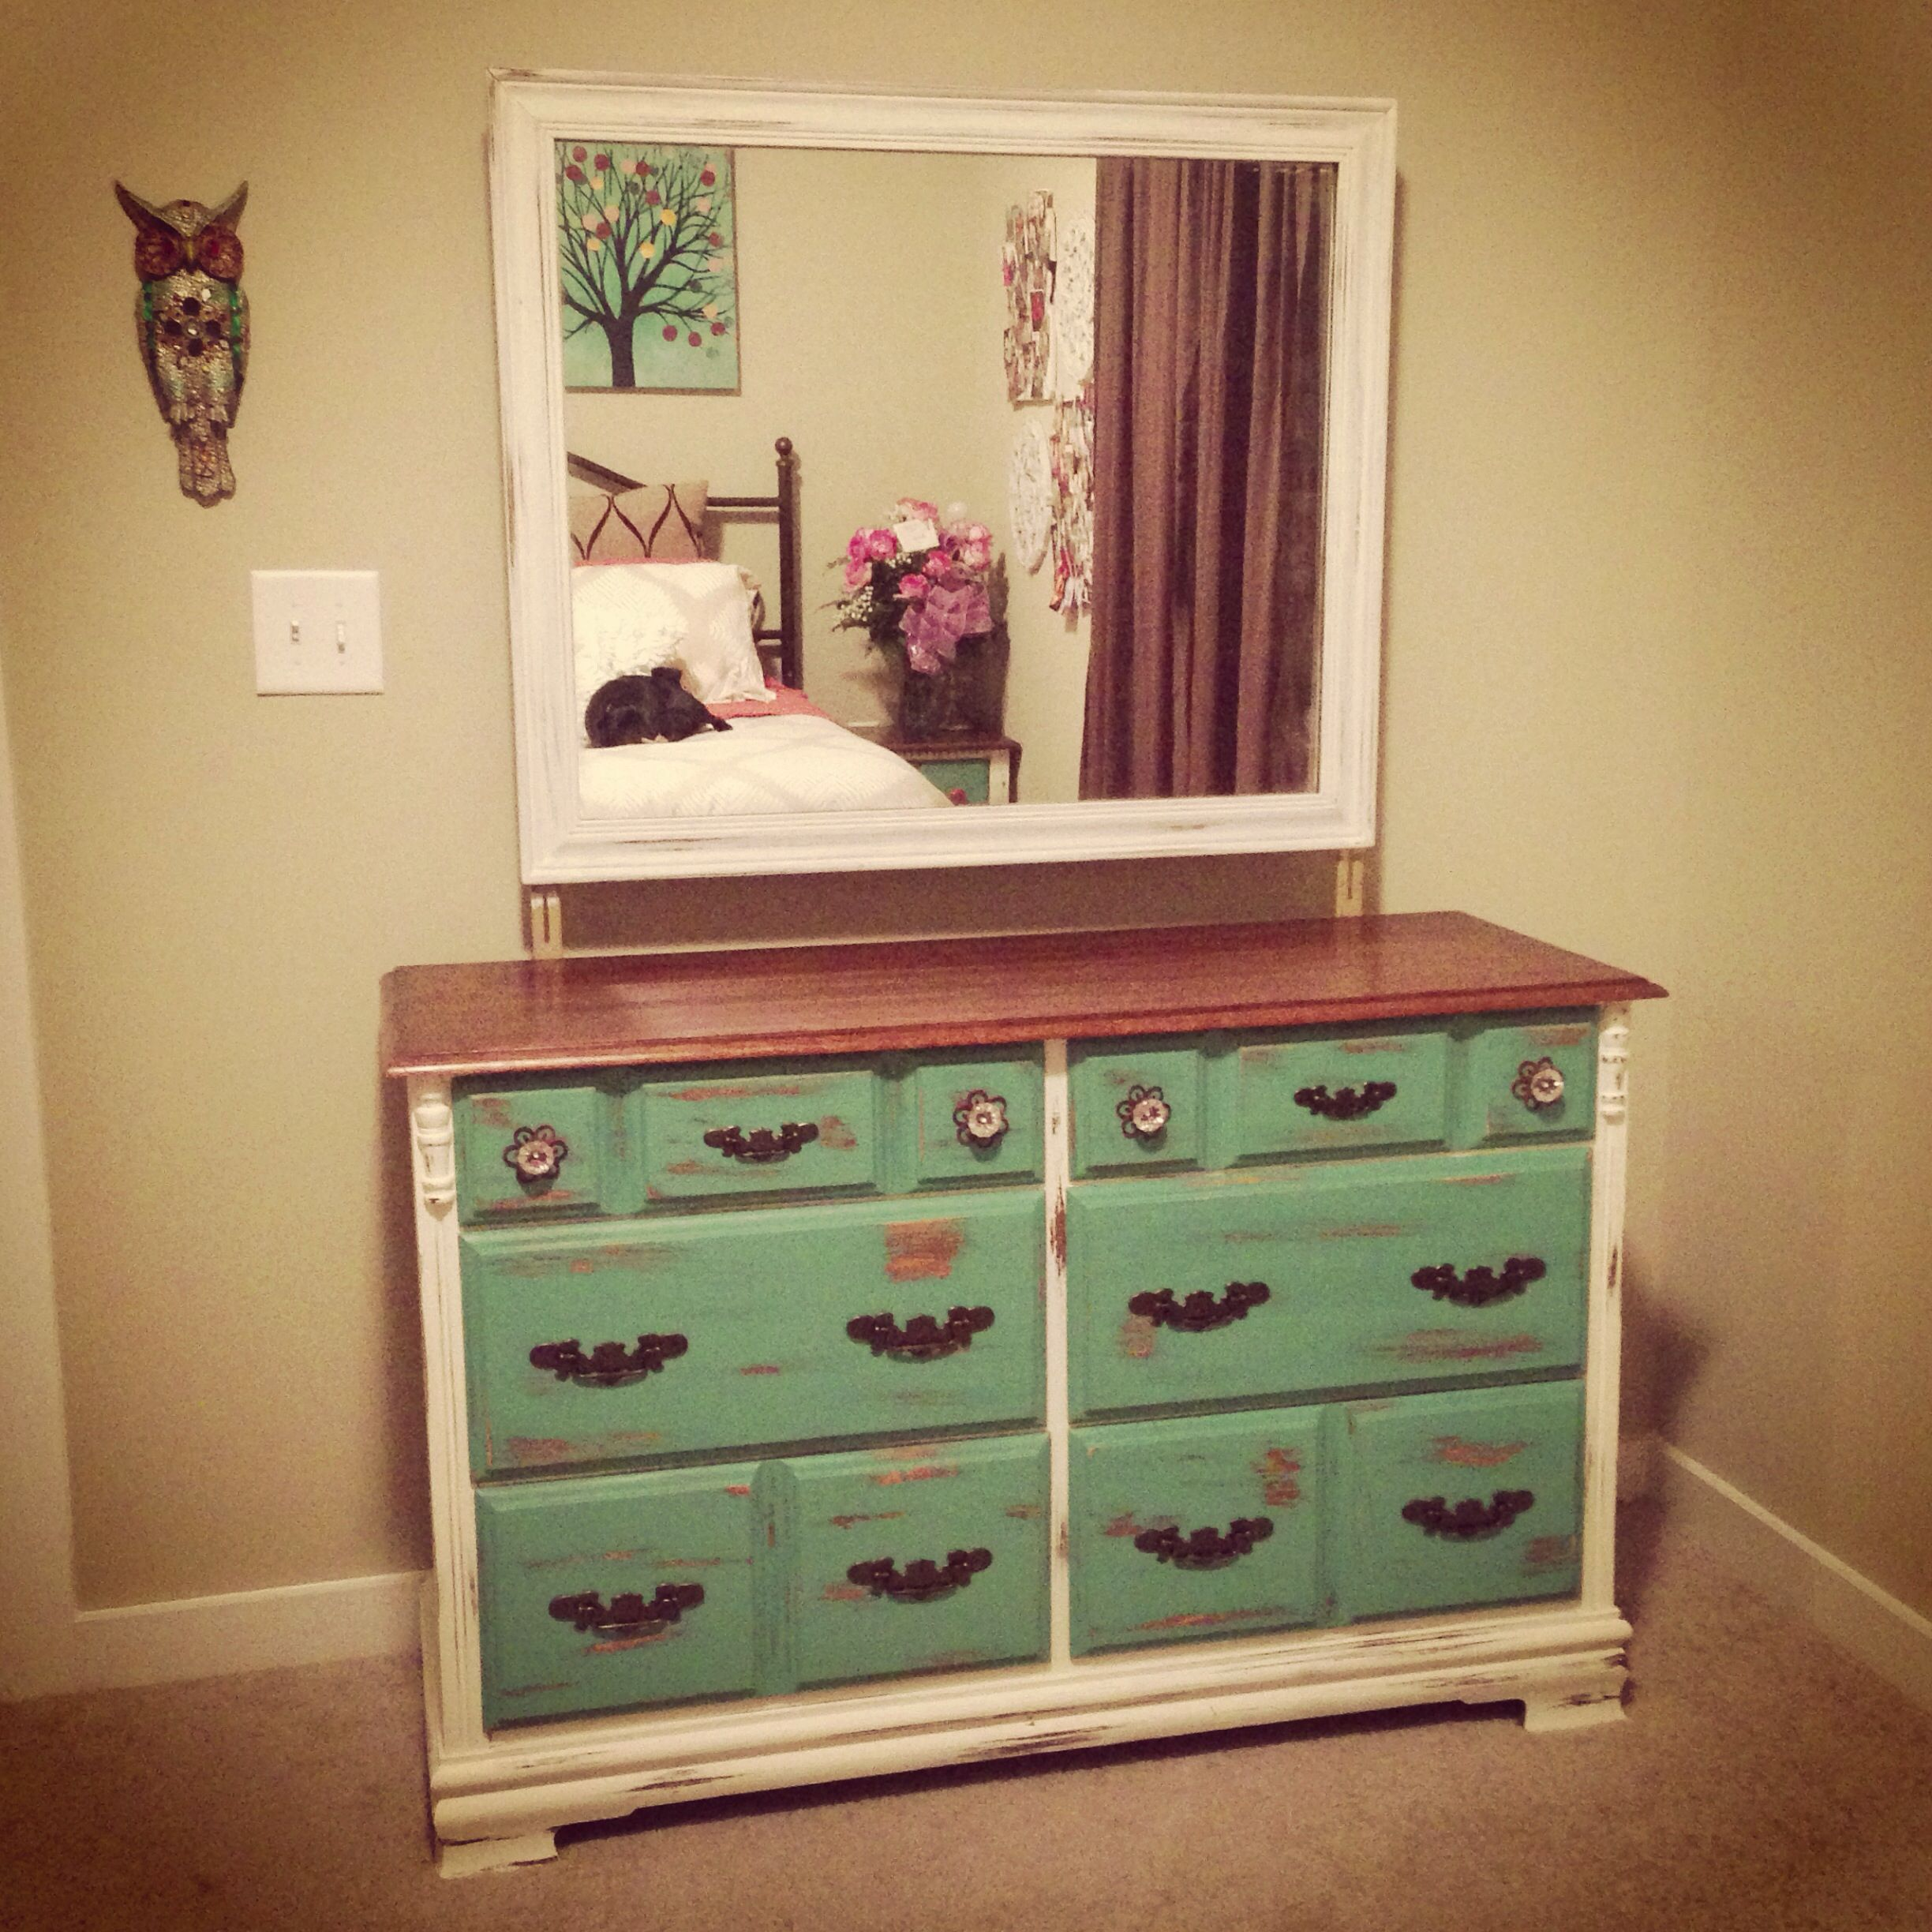 White Distressed Bedroom Furniture Alluring White #brown #turquoise #wooden #dresser #mirror #diy #chalkpaint Design Inspiration